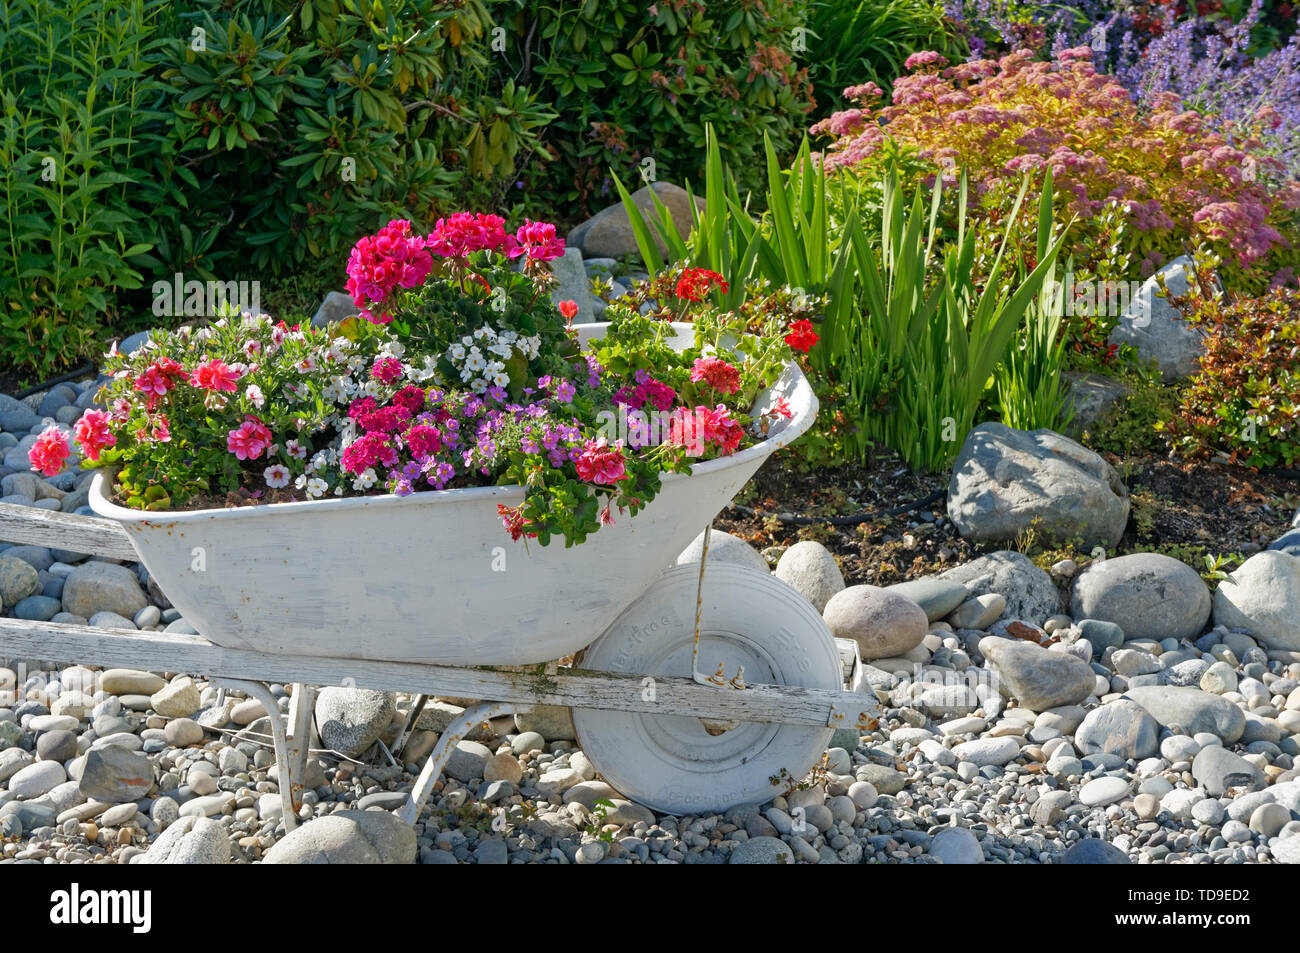 old-wheelbarrow-painted-white-and-being-